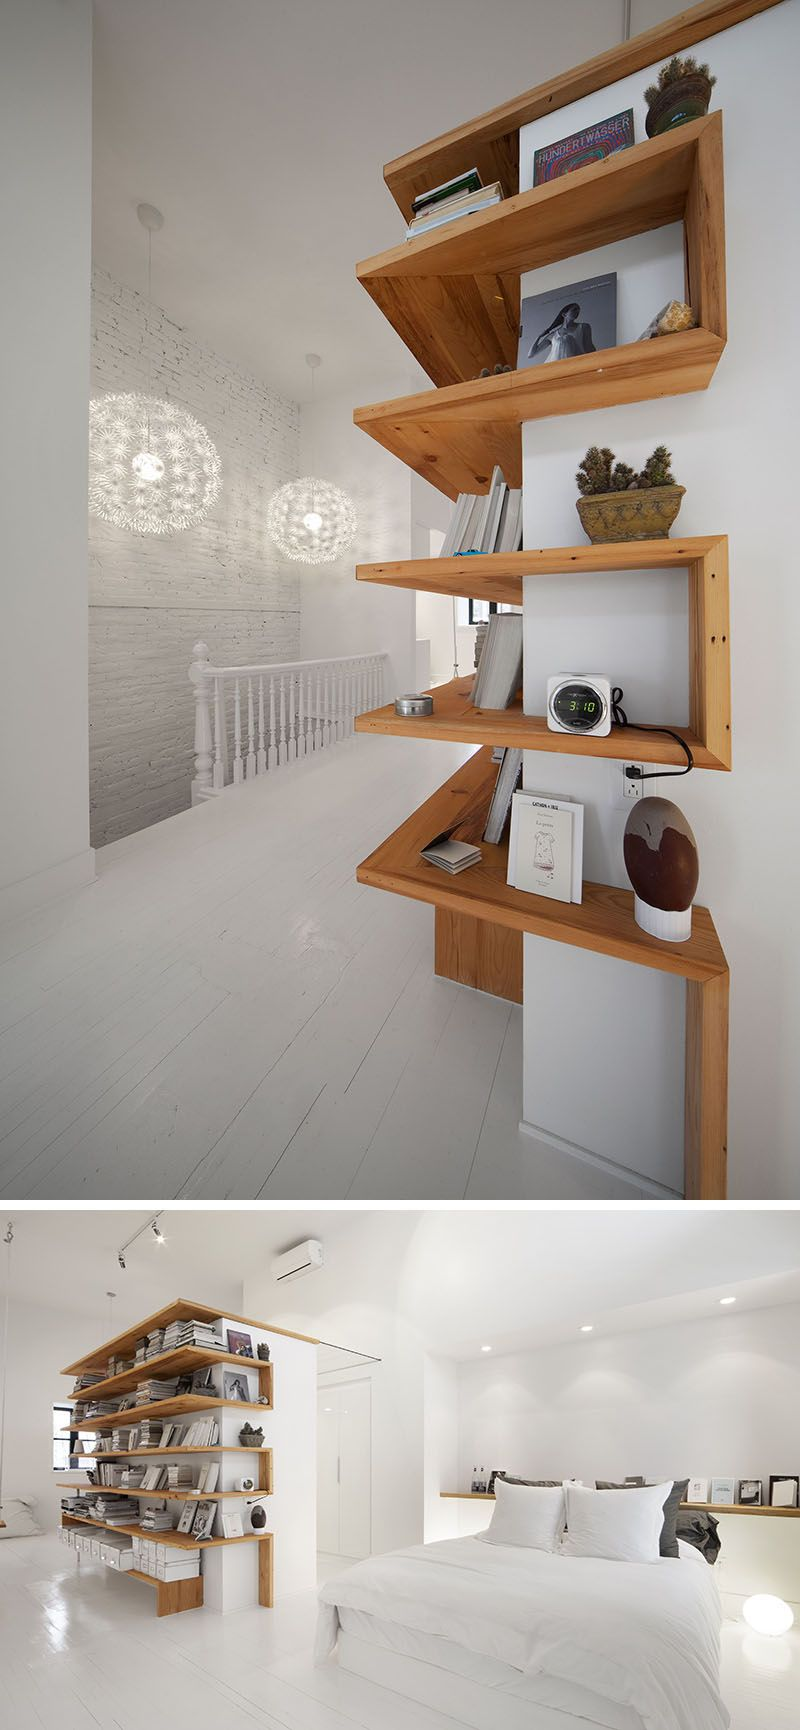 Shelving Design Idea - Shelves That Wrap Around Corners // This loft has wooden shelves that wrap around the central wall to help keep the books, photos, and decor in one place and to keep the rest of the space clean and uncluttered.